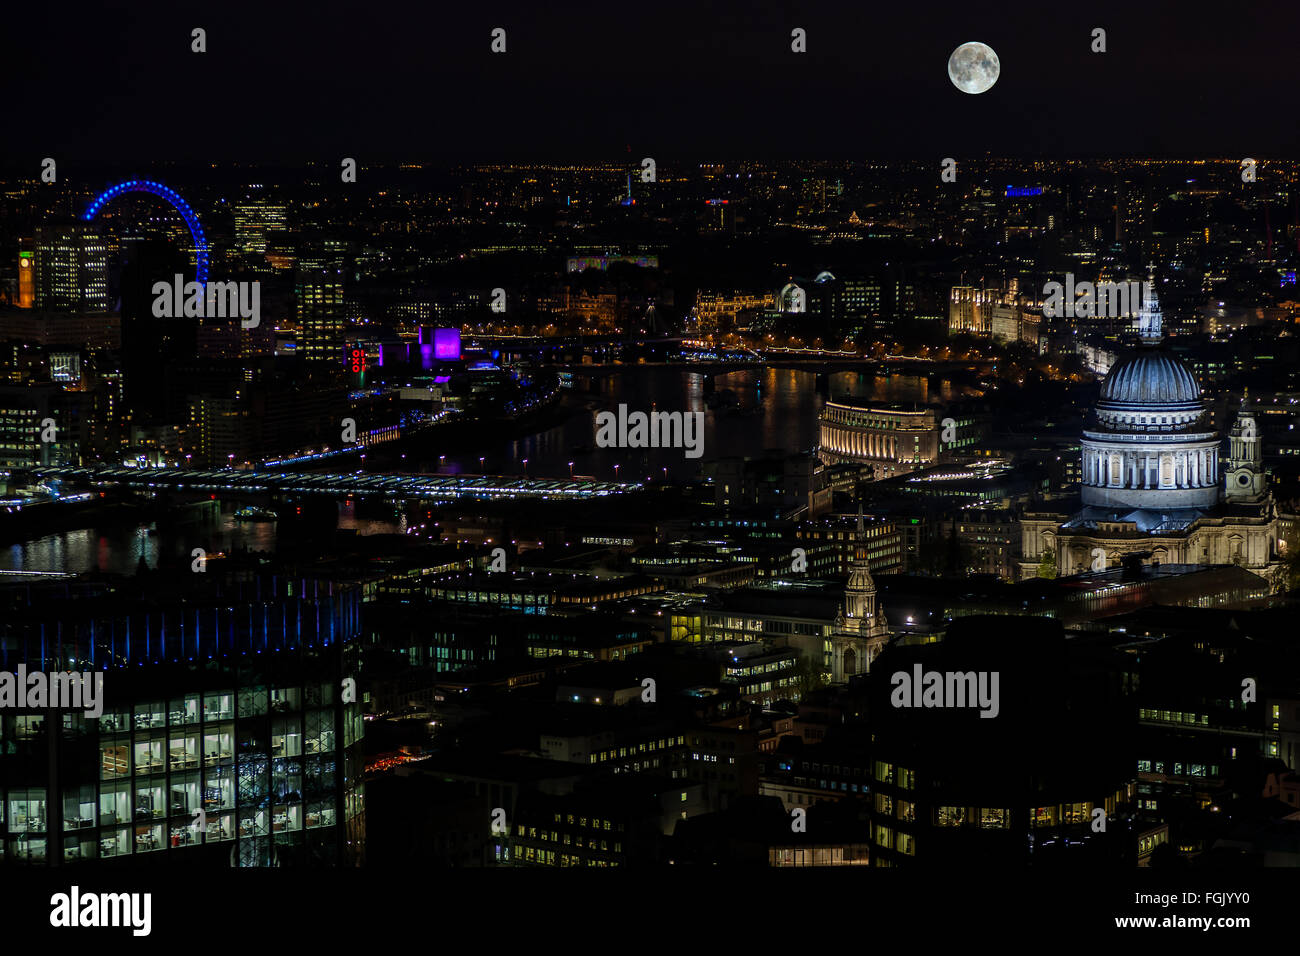 The full moon rising over the city of London England - Stock Image